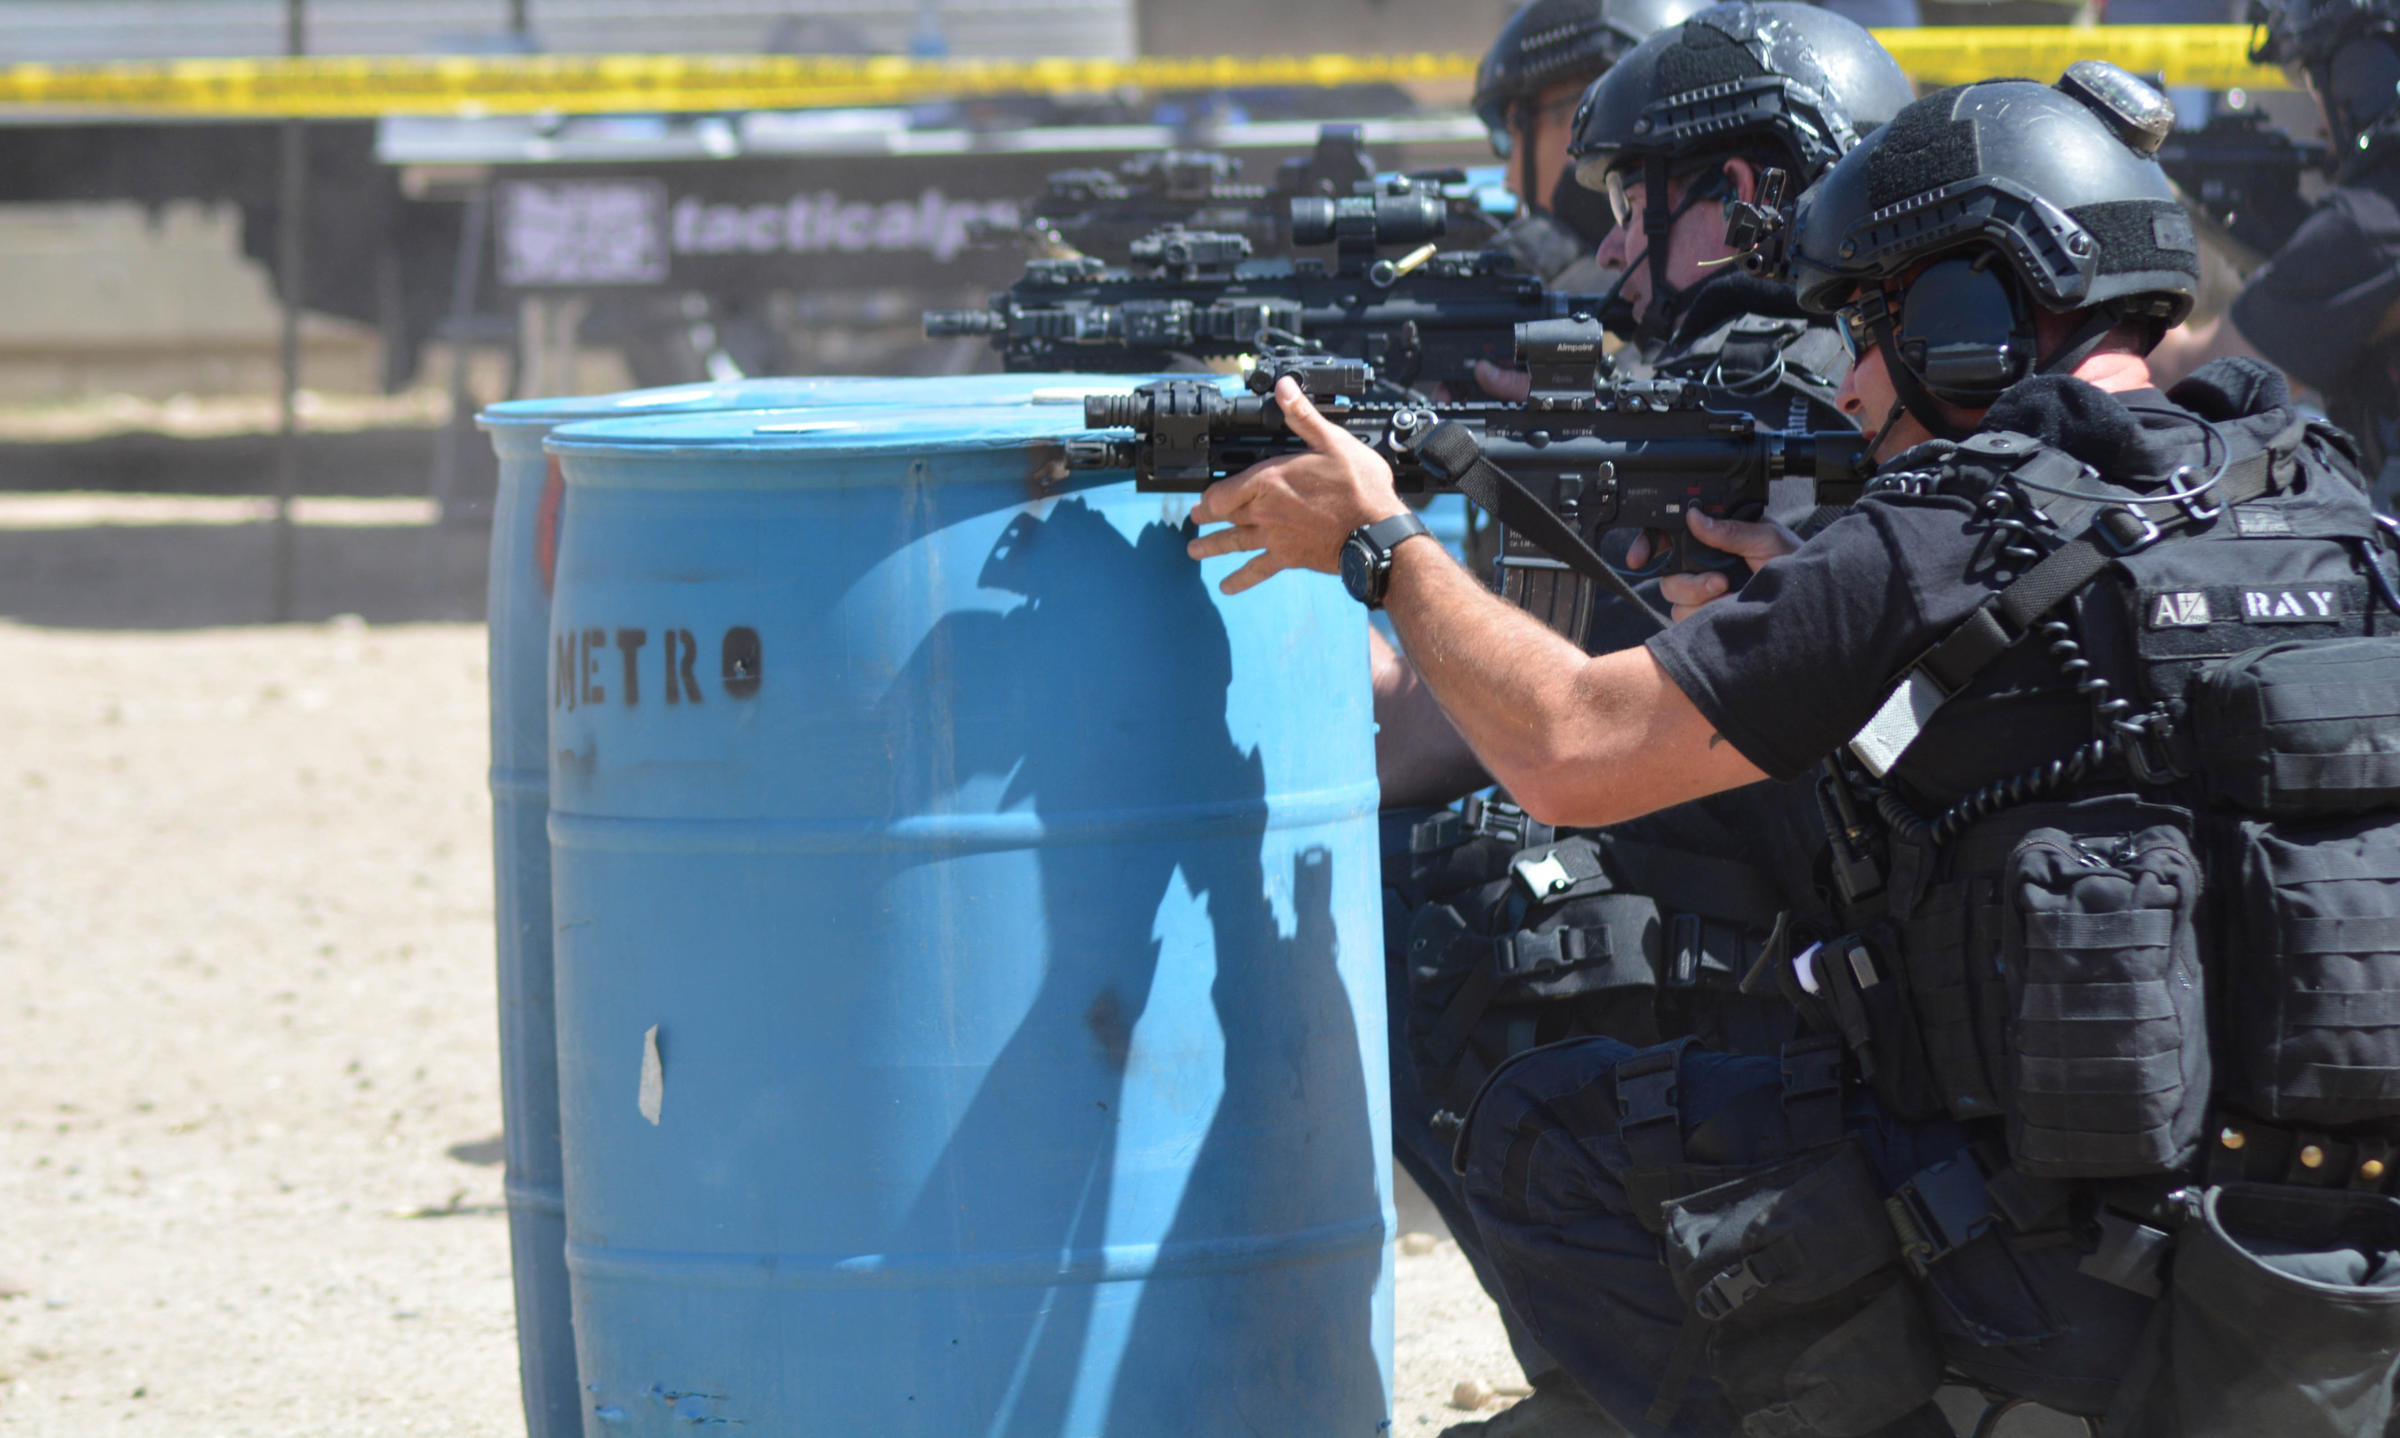 with gamers swatting swat expert says cops rarely receive training